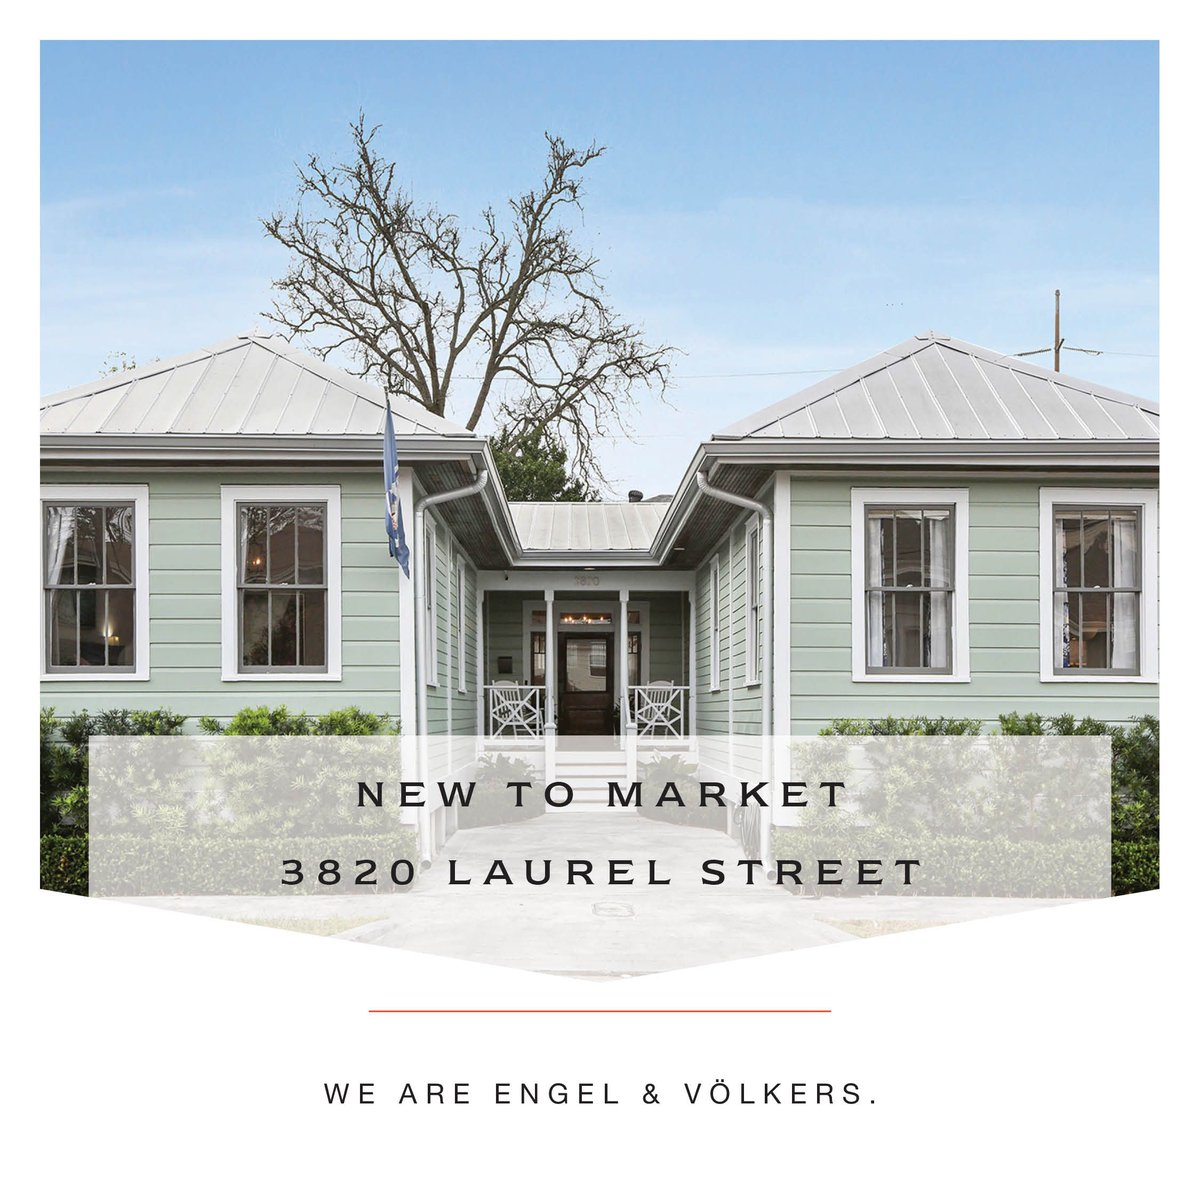 *New To Market*  3820 Laurel Street | Incredible Uptown Cottage | $515,000 3 Bed, 2 Bath, 1518 SF.   Contact Jonathan Goedecke today for more details!    +1 504-355-7821  Link for details:  https://buff.ly/2QDO9sw   #evneworleans #nolarealestate #neworleansrealestate #nolarealtorpic.twitter.com/sztRigC43A